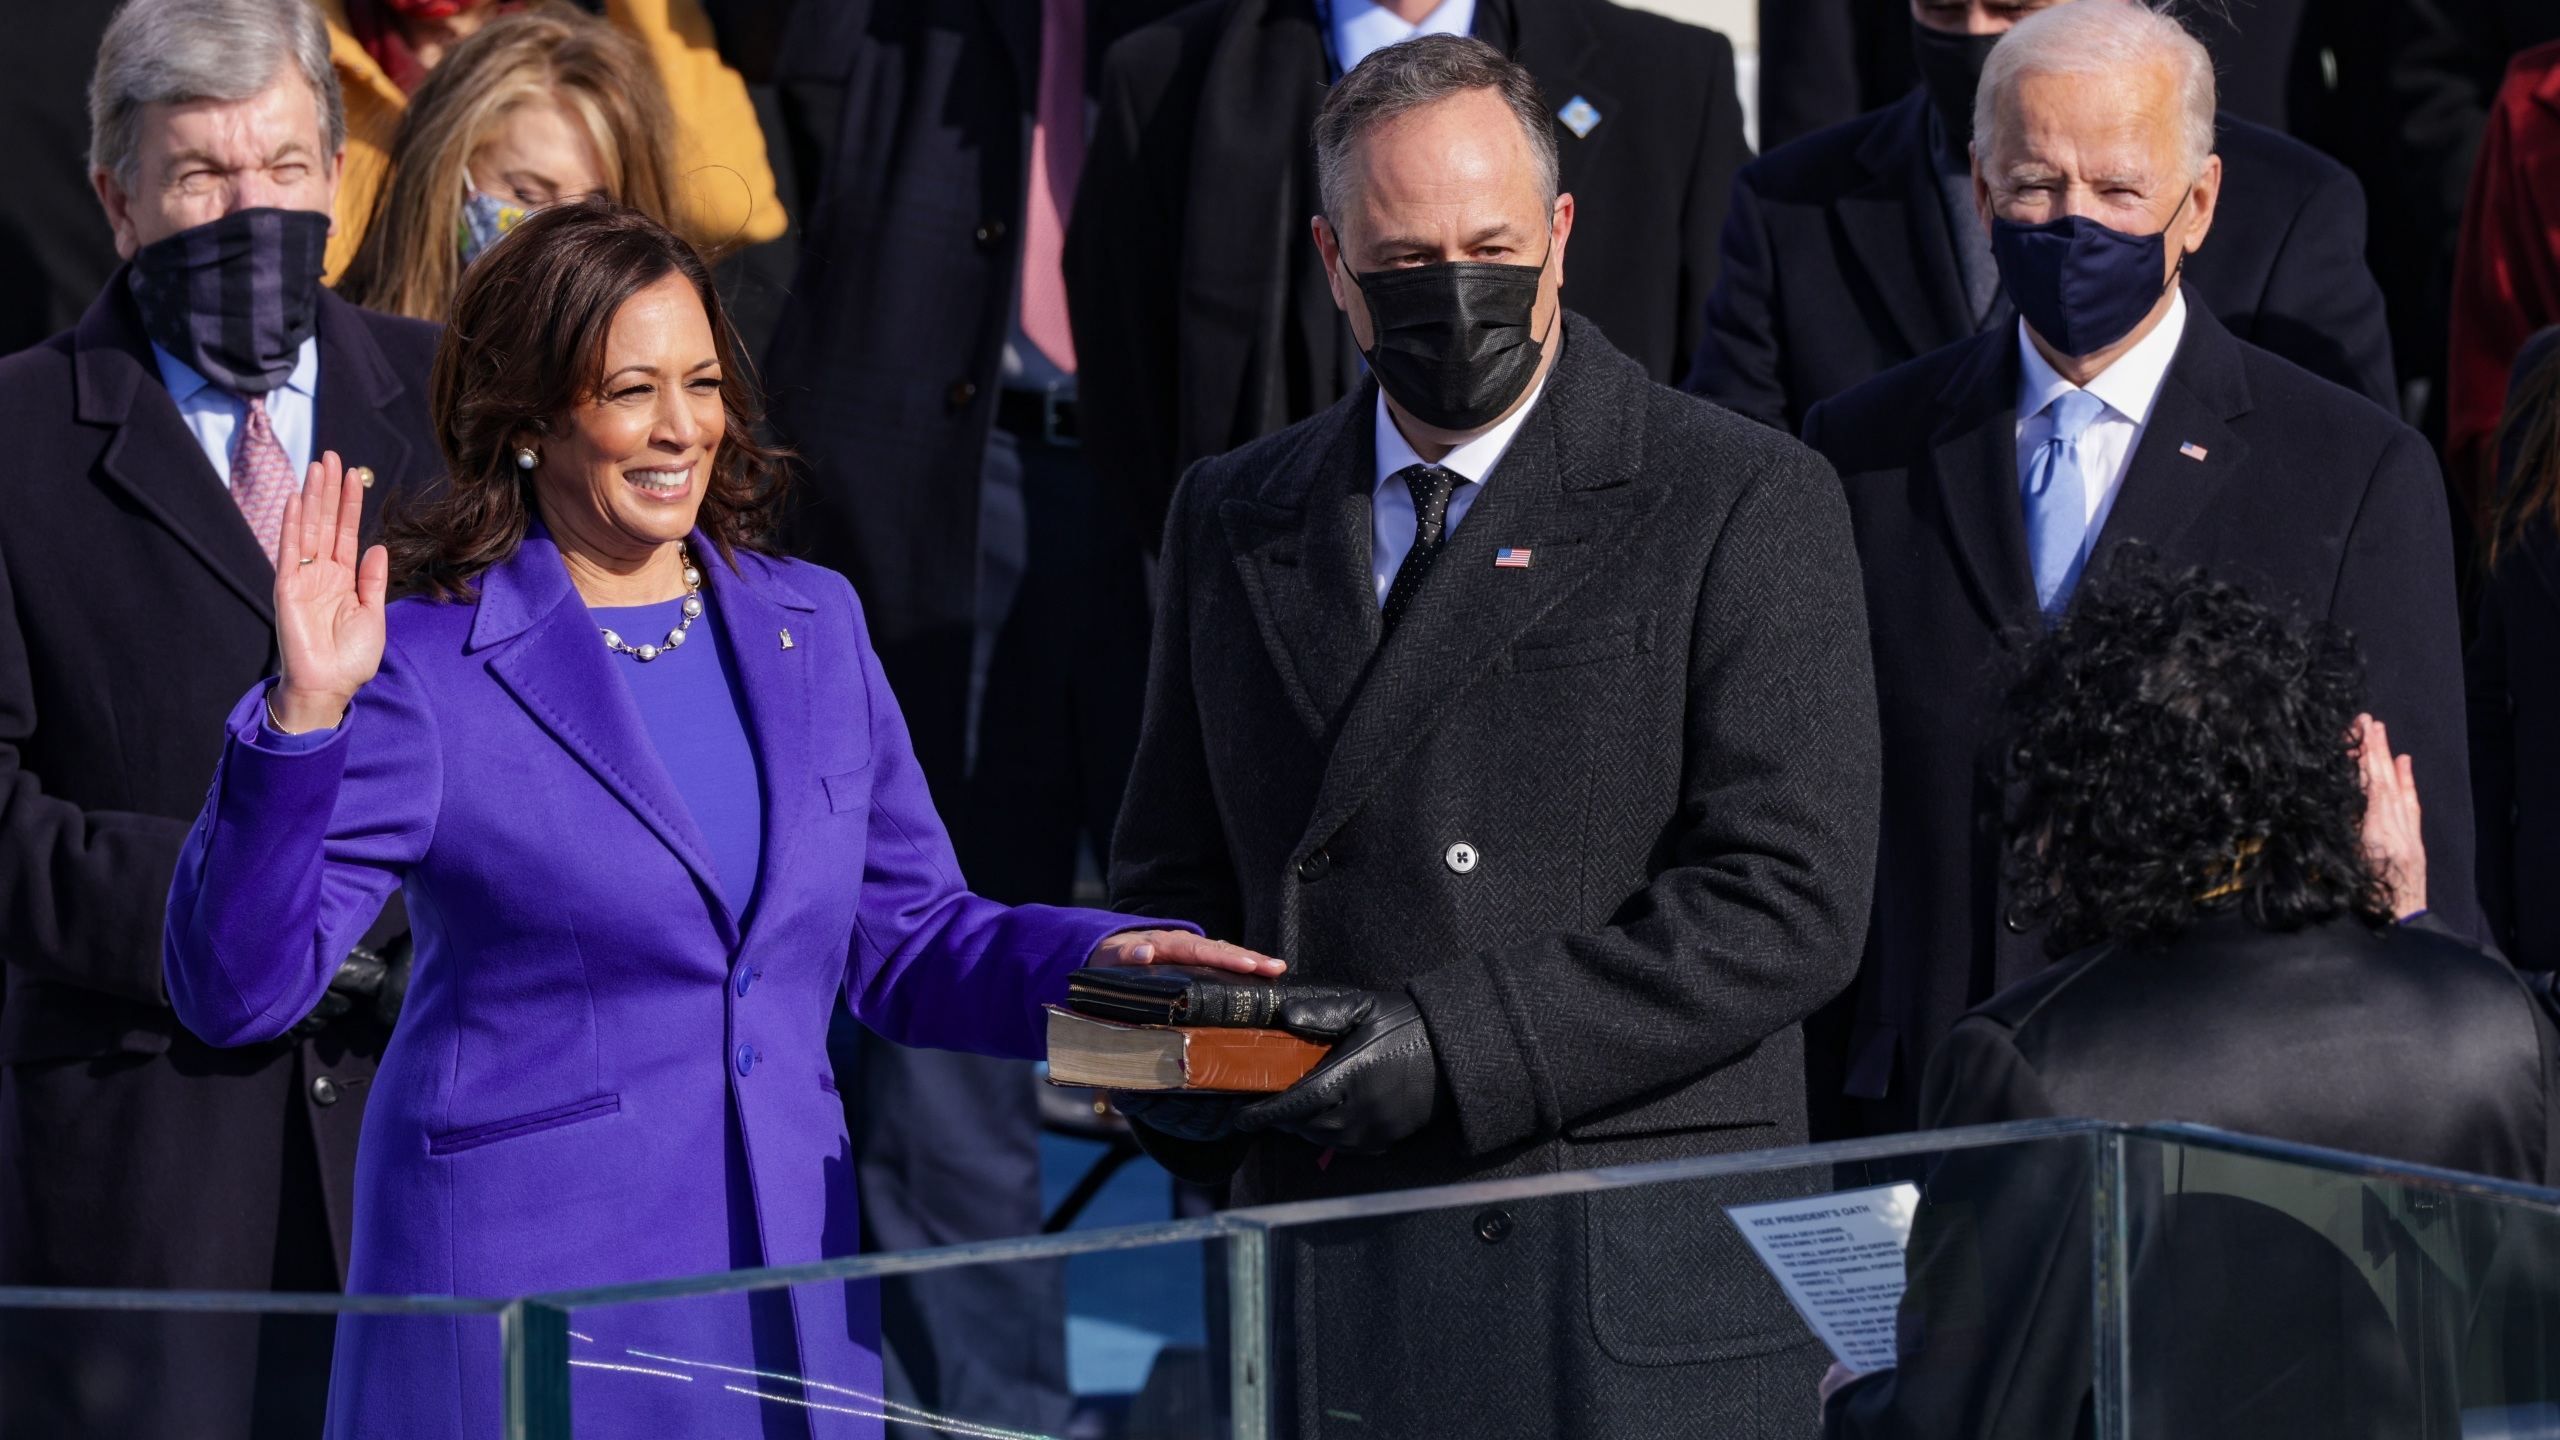 Kamala Harris is sworn as U.S. Vice President by U.S. Supreme Court Associate Justice Sonia Sotomayor as her husband Doug Emhoff looks on at the inauguration of U.S. President-elect Joe Biden on the West Front of the U.S. Capitol on January 20, 2021 in Washington, DC. During today's inauguration ceremony Joe Biden becomes the 46th president of the United States. (Photo by Alex Wong/Getty Images)